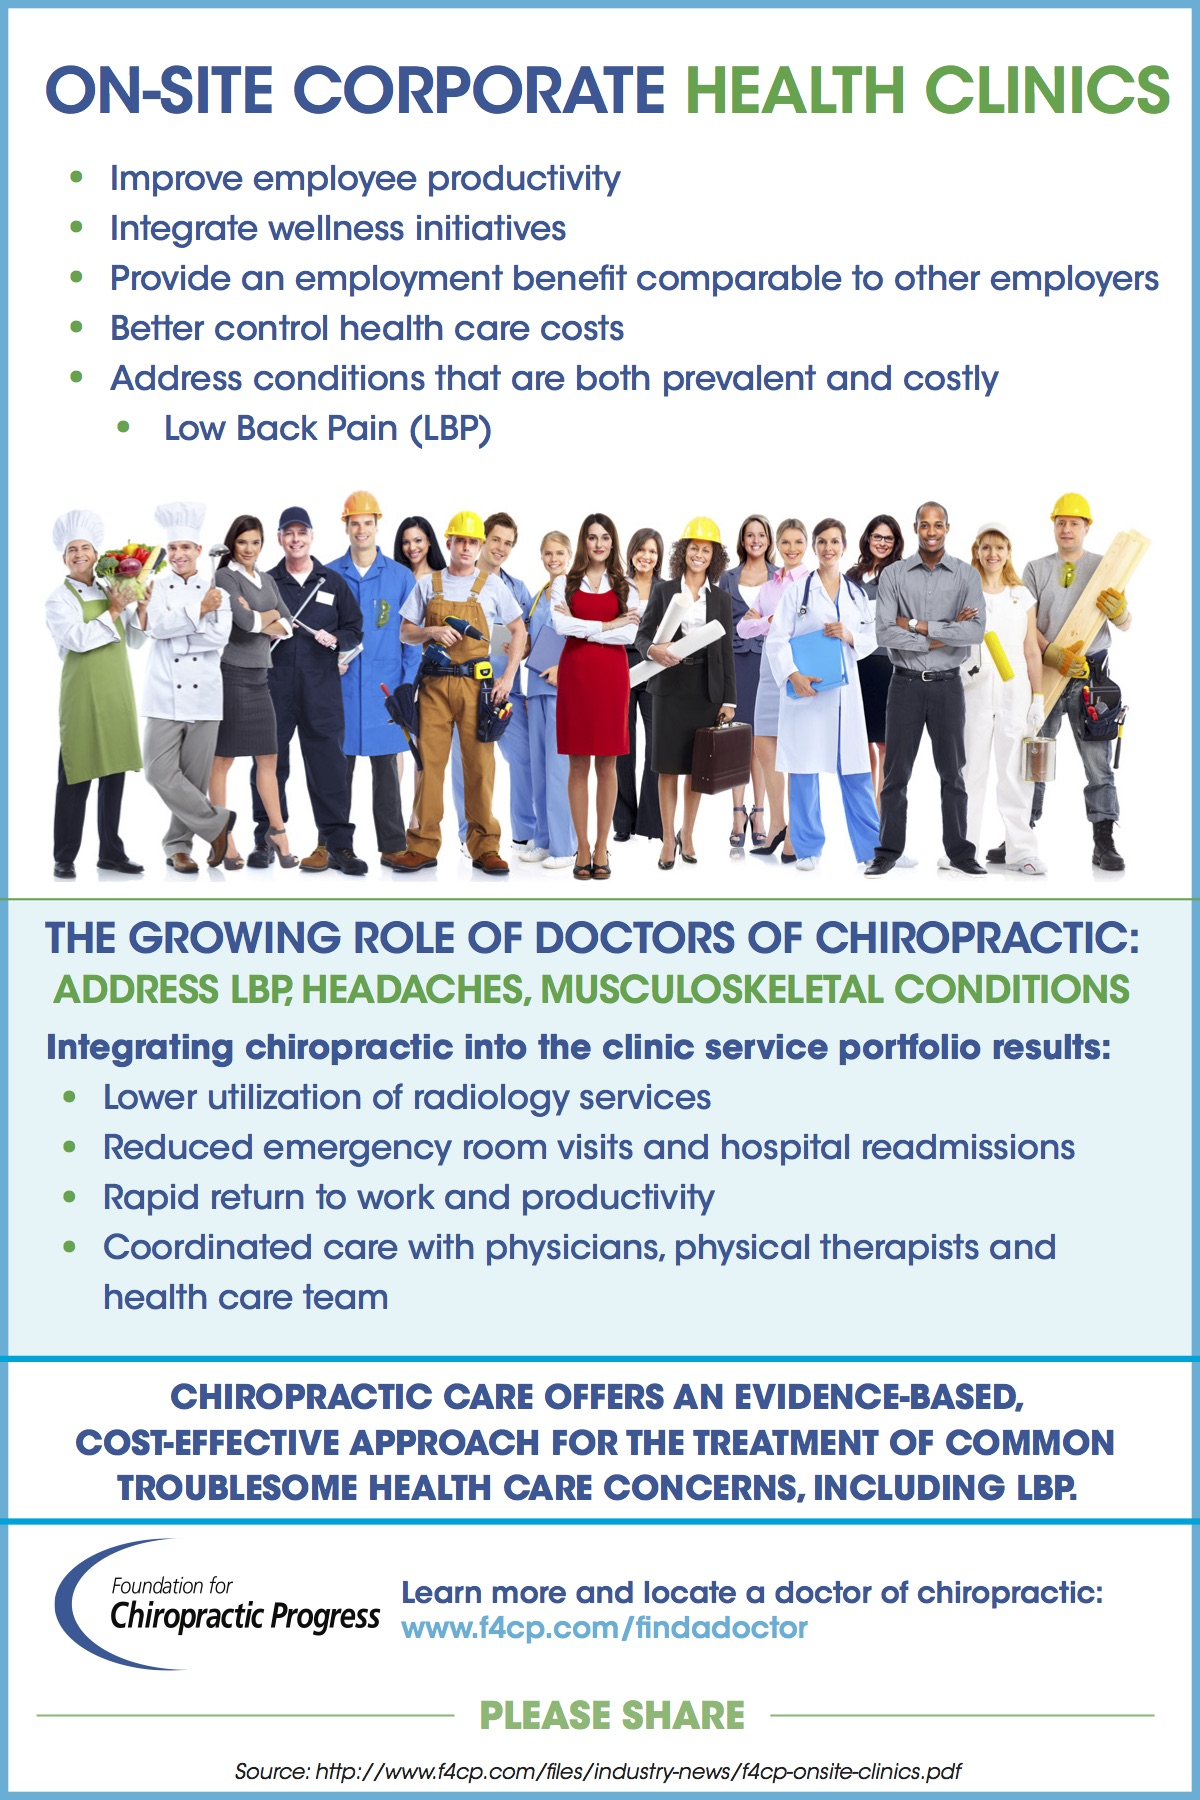 f4cp_onsiteclinics_infographic